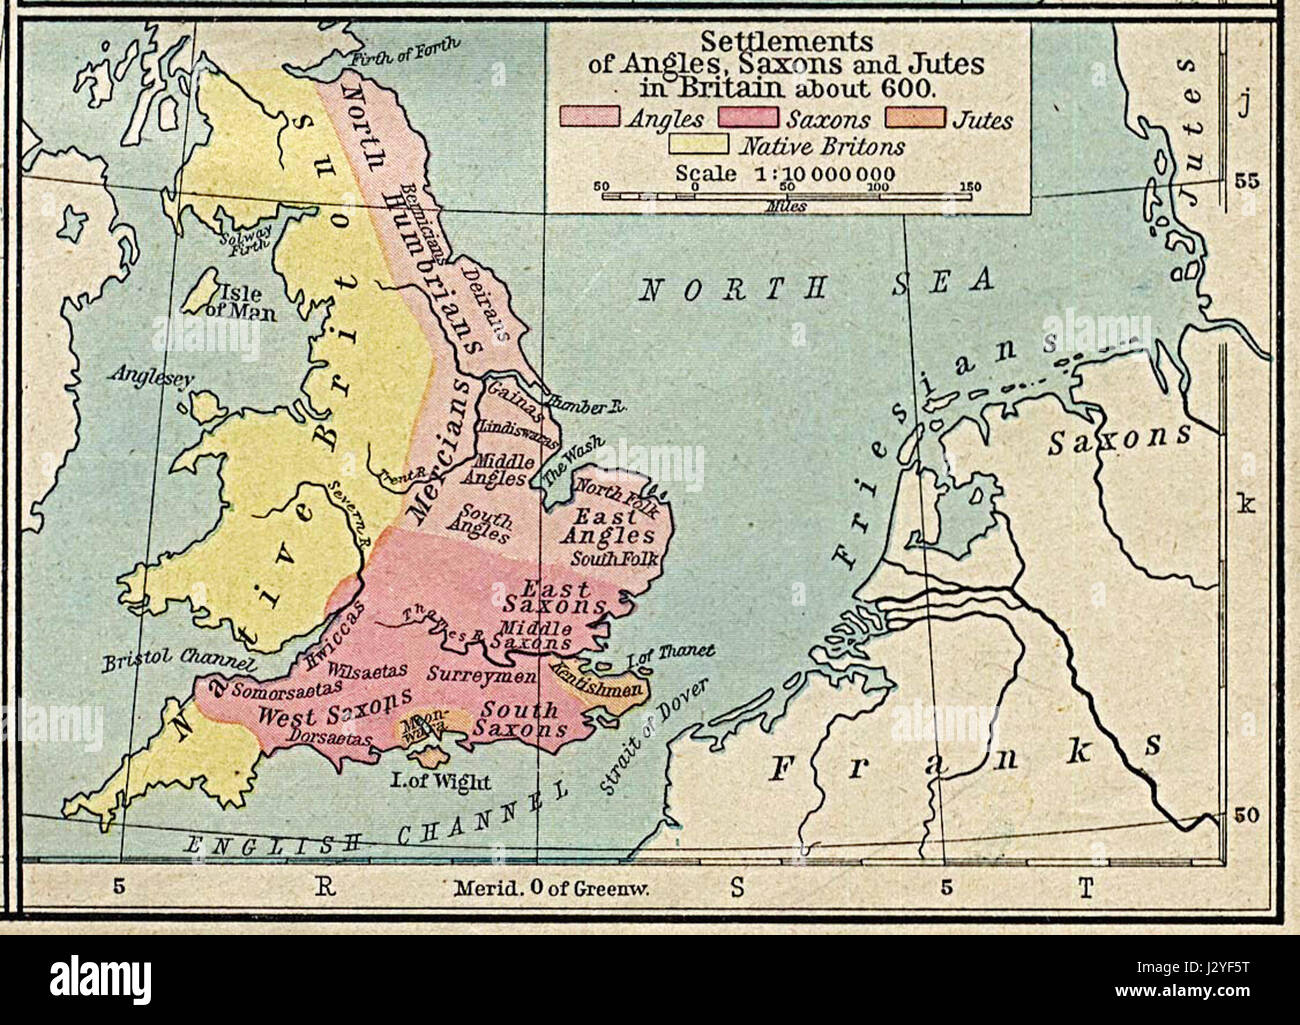 Angles, Saxons, Jutes in Britain year 600 - Stock Image